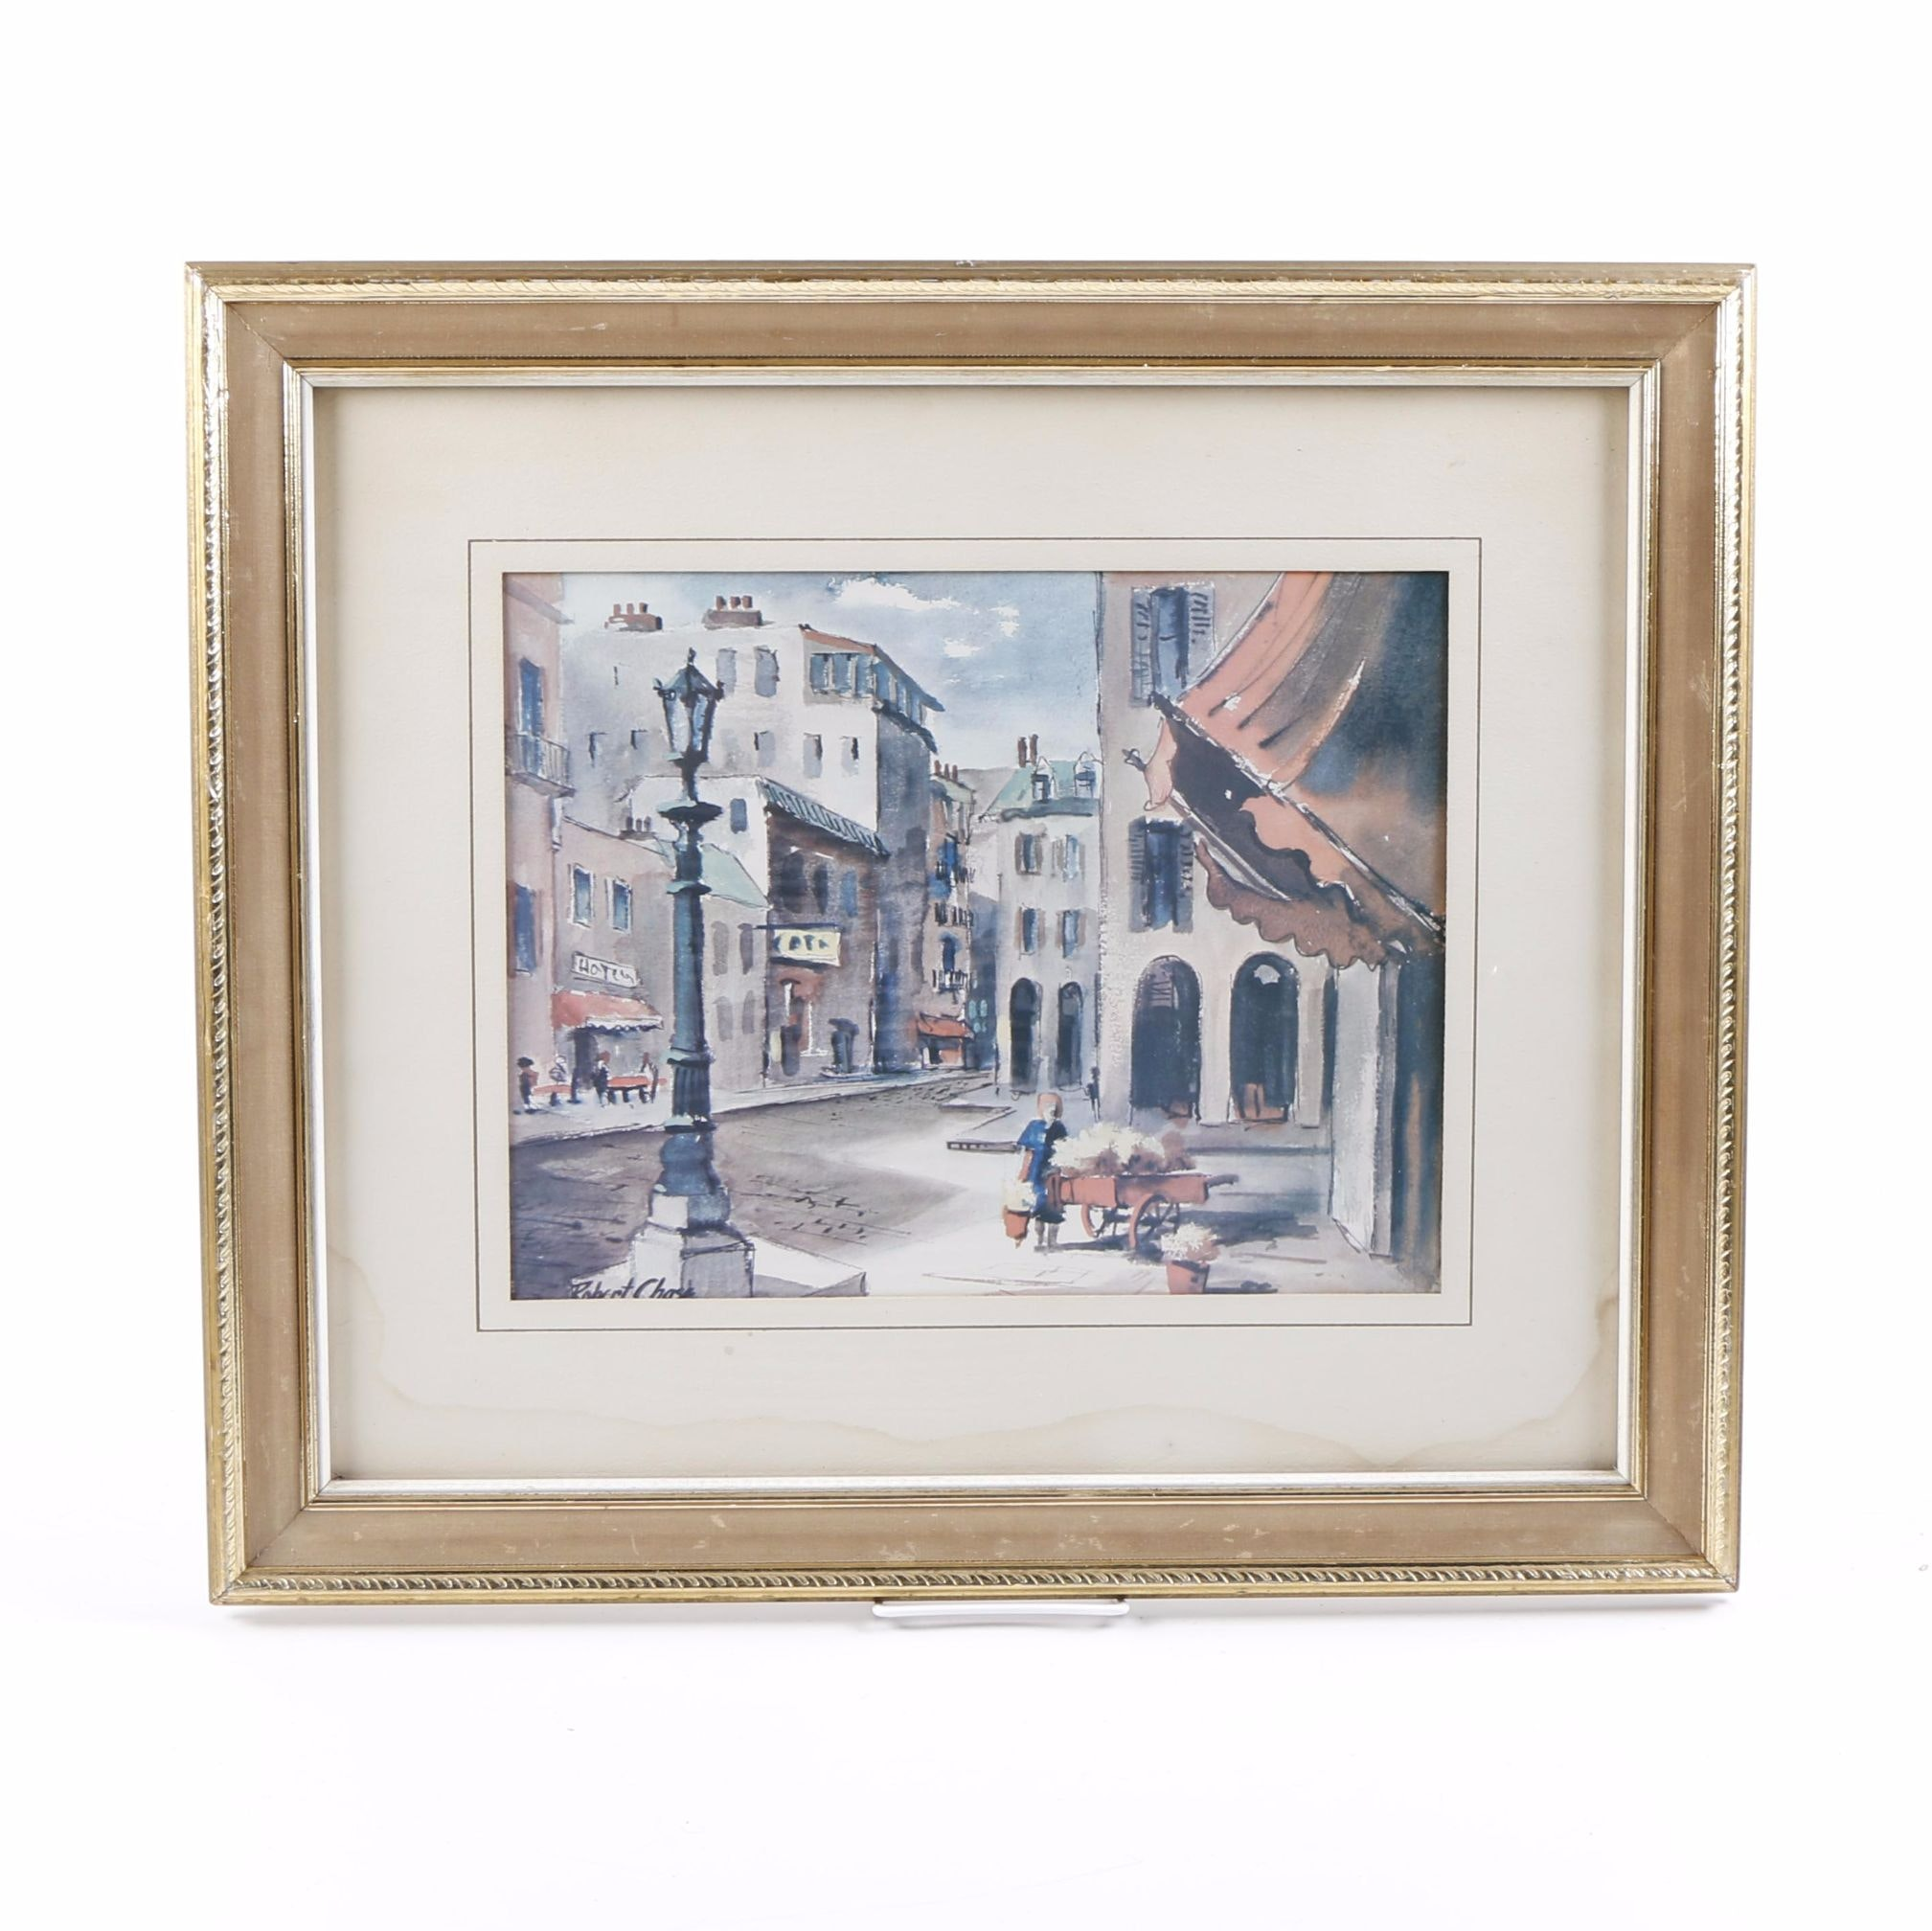 Offset Lithograph After Robert Chase of Street Scene